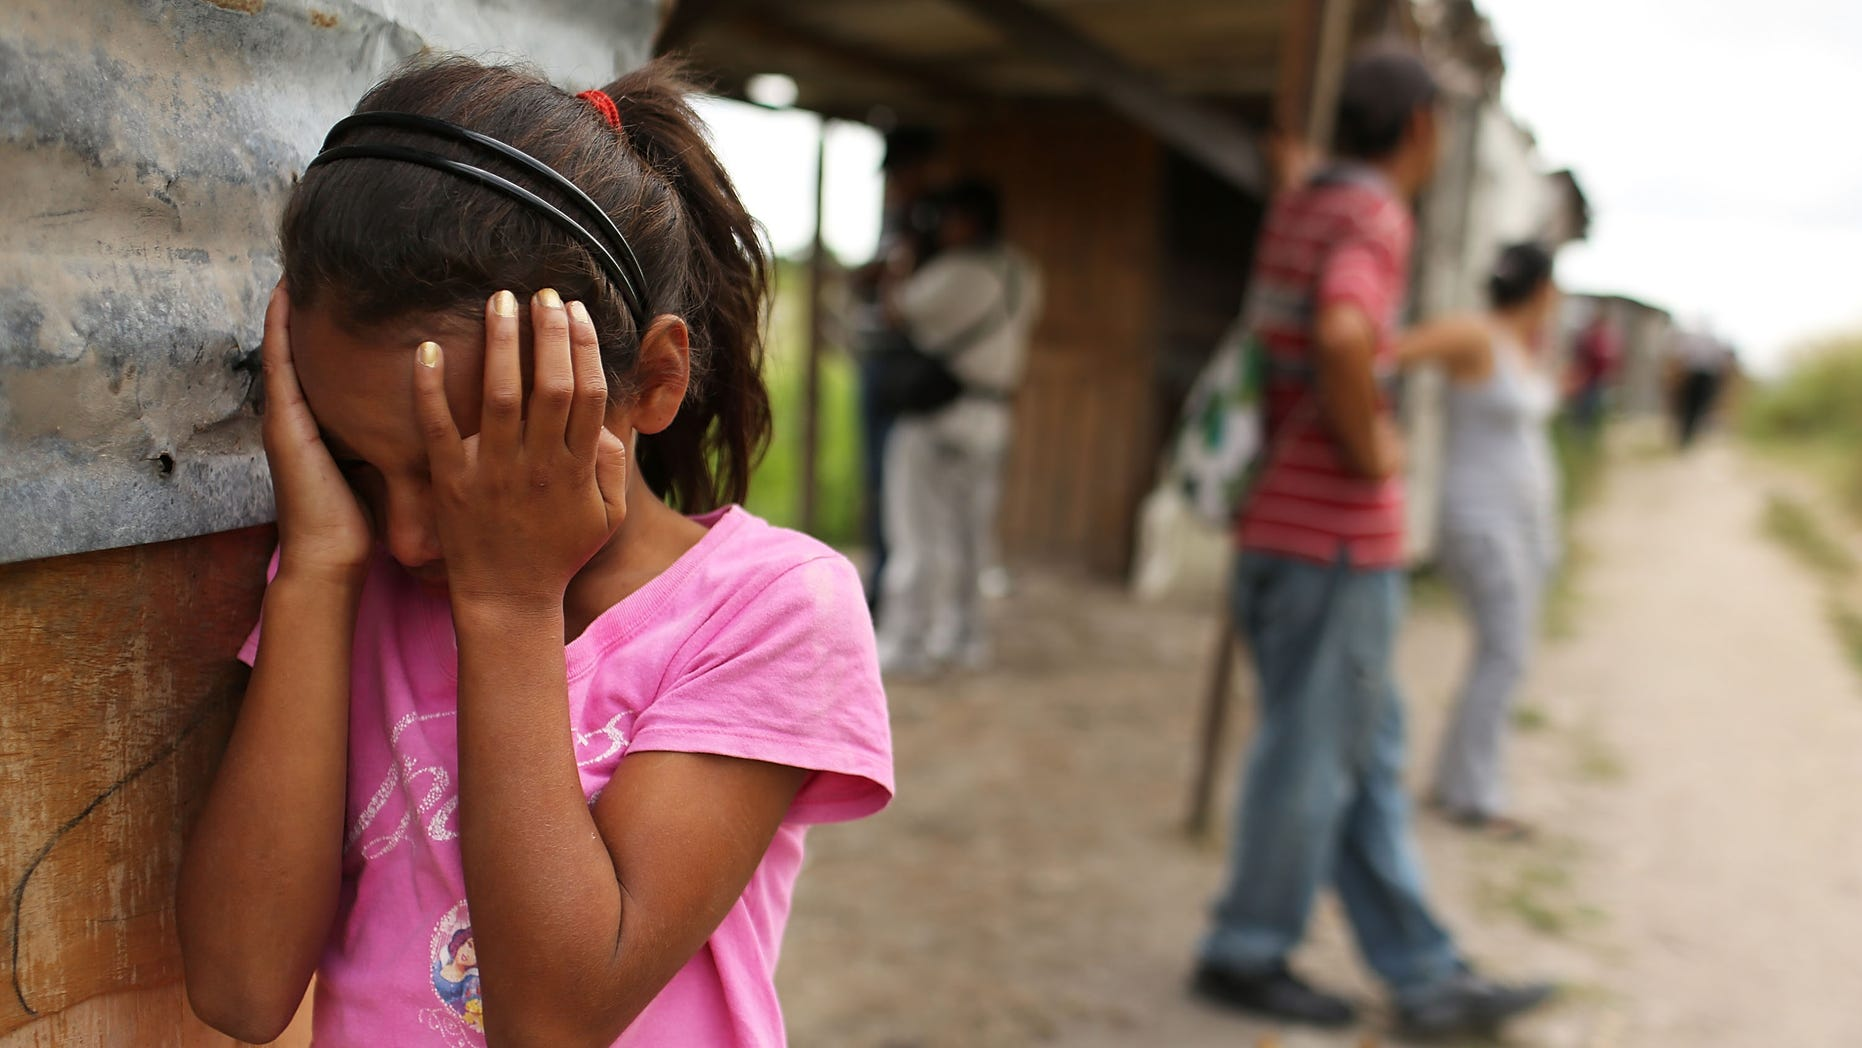 TEGUCIGALPA, HONDURAS - JULY 20:  A young girl cries as her home and neighborhood are forcefully dismantled in a shanty town after the government claimed that the settlement was illegal on July 20, 2012 in Tegucigalpa, Honduras. Land disputes are becoming increasingly frequent in Honduras  which is alarming the nation's business class while sowing fears of increased political violence. In a nation where 72% of the poorest landowners hold only 11.6% of cultivated land, tensions are rising as the poor have few places to go and little opportunities for productive employment. Honduras now has the highest per capita murder rate in the world and its capital city, Tegucigalpa, is plagued by violence, poverty, homelessness and sexual assaults. With an estimated 80% of the cocaine entering the United States now being trans-shipped through Honduras, the violence on the streets is a spillover from the ramped rise in narco-trafficking.  (Photo by Spencer Platt/Getty Images)